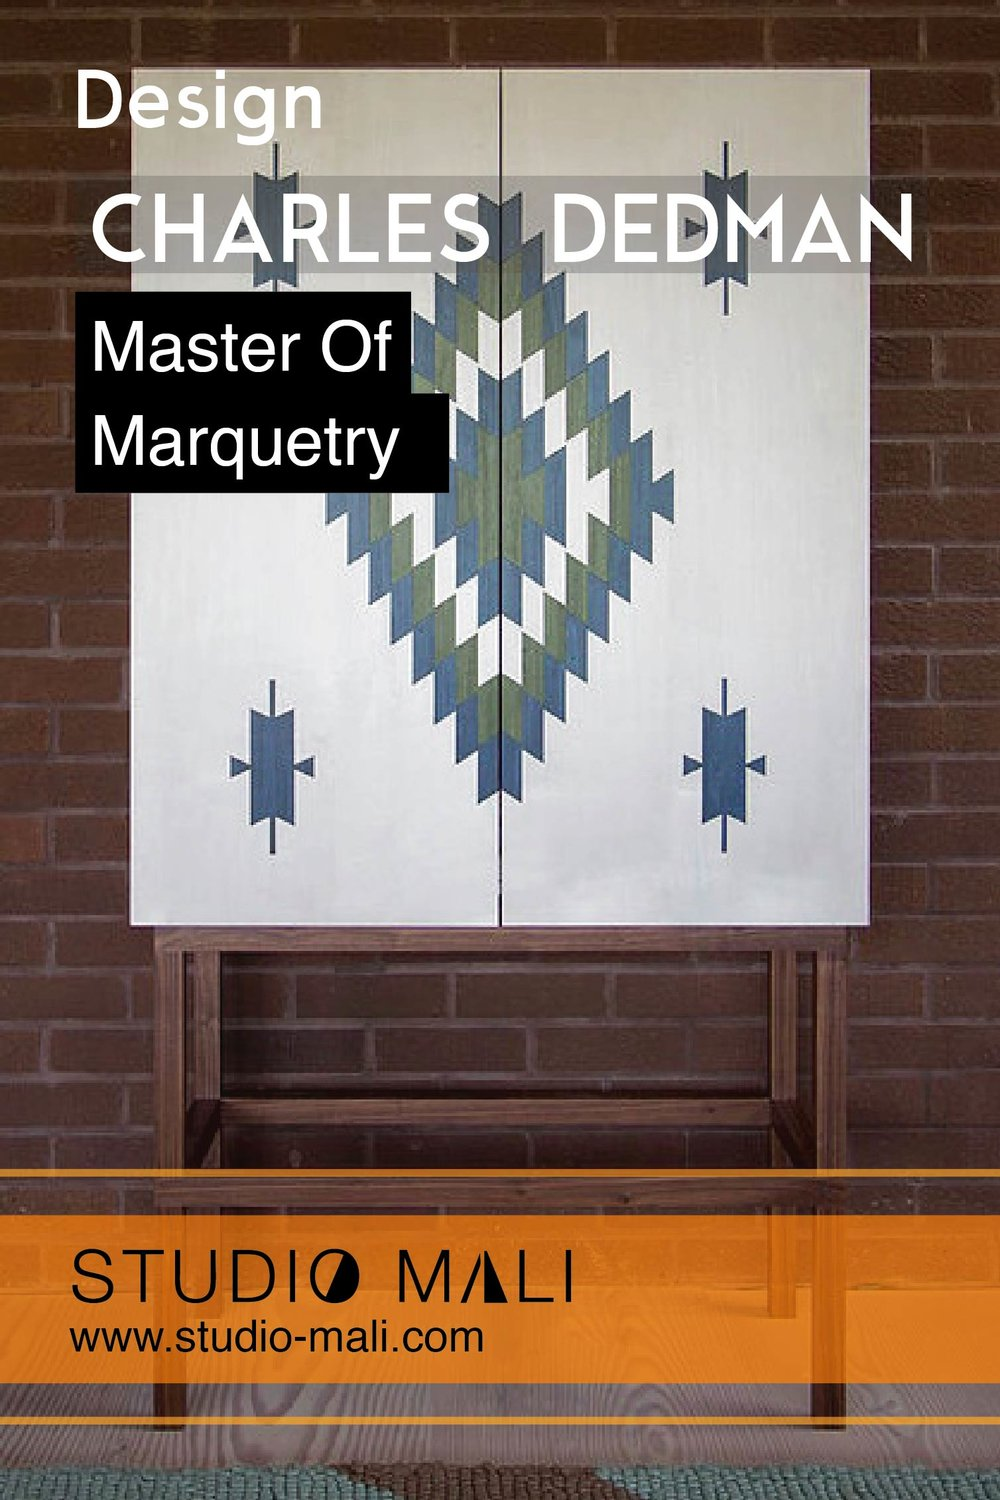 Design - Charles Dedman - Master Of Marquetry, By Studio Mali.jpg